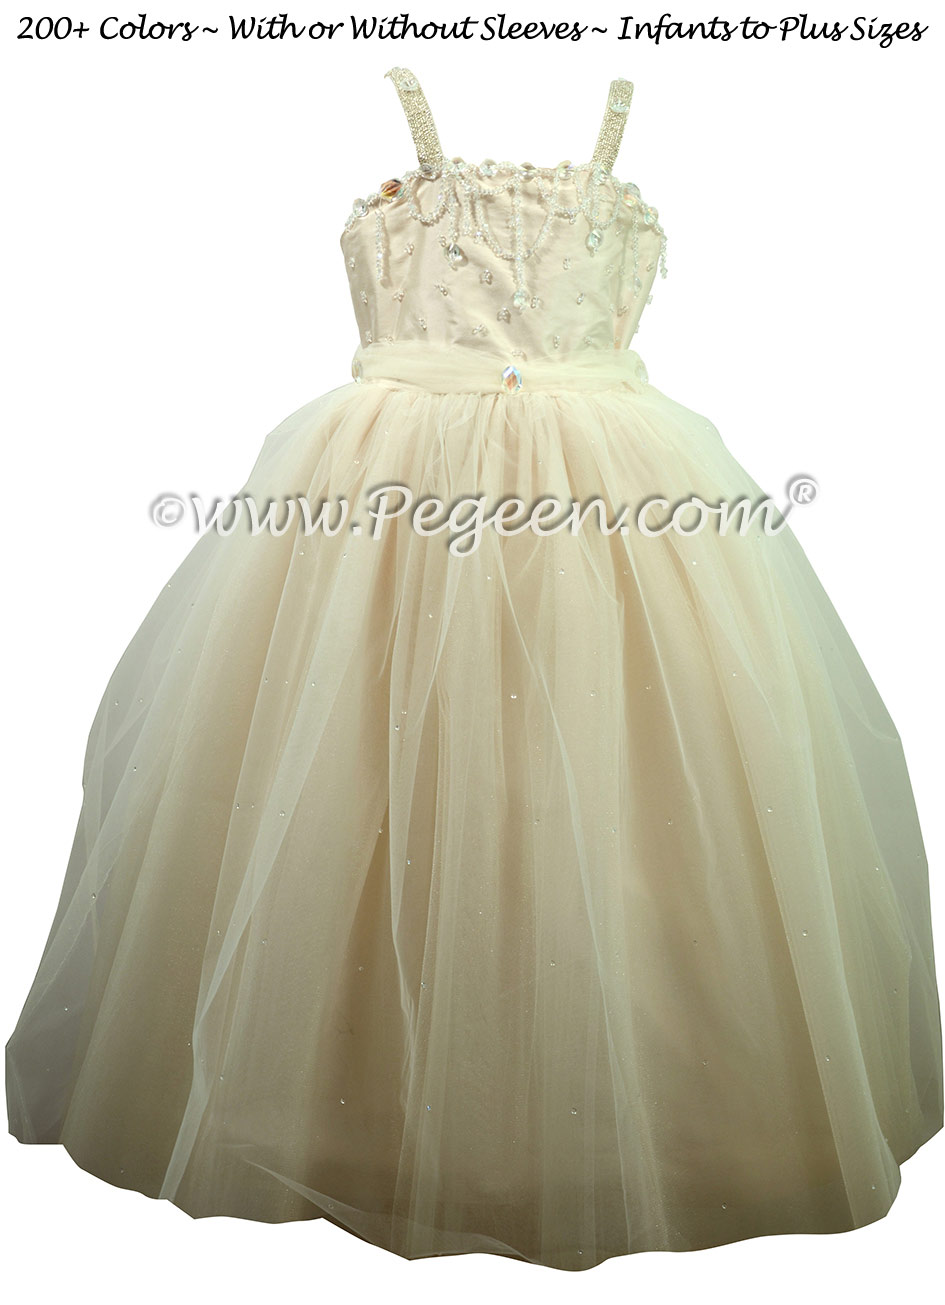 Champagne (nude) Silk and Tulle Silk Style 904 Flower Girl Dresses